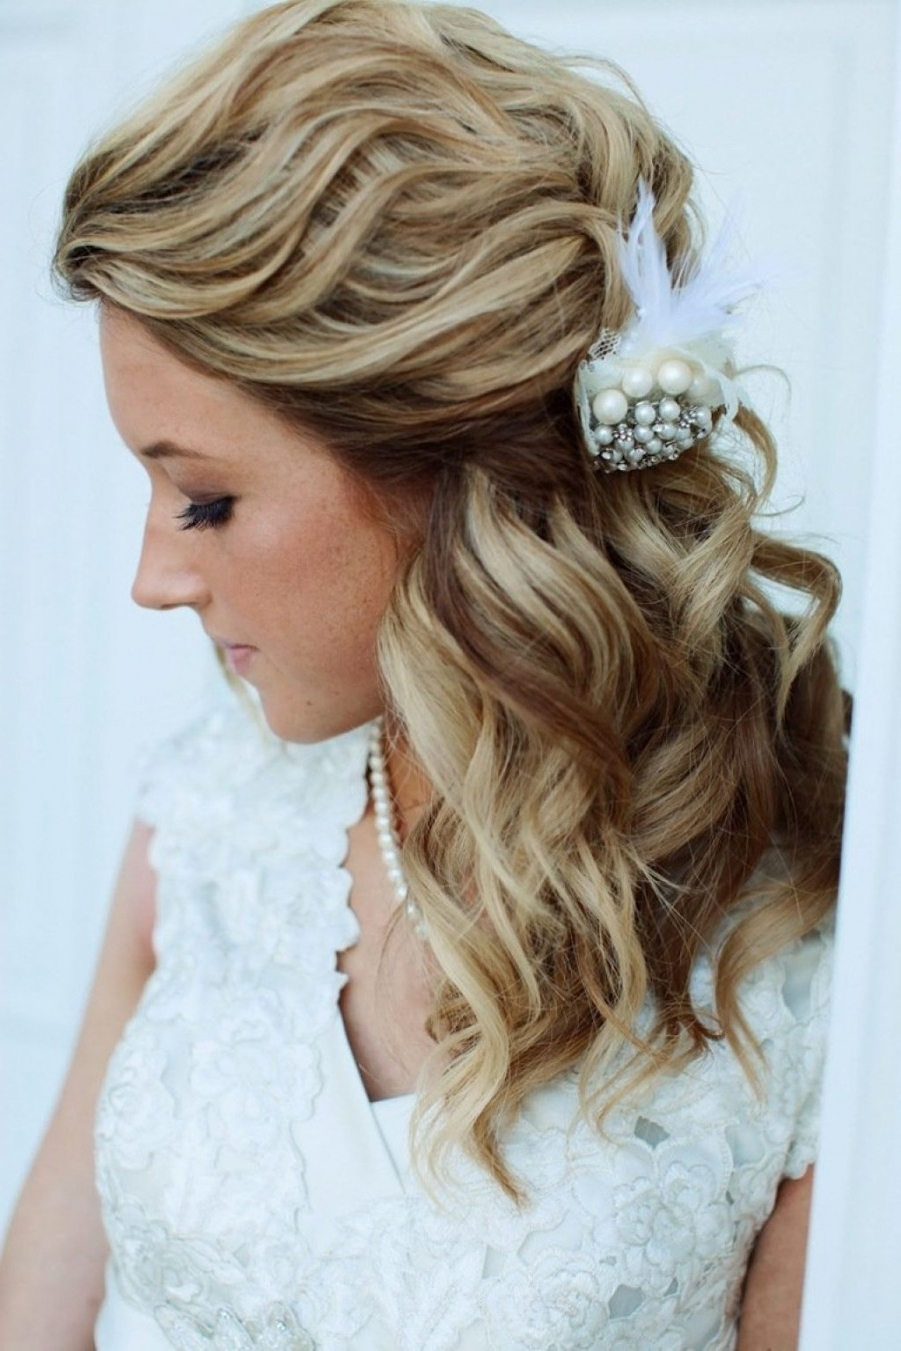 Well Known Hairstyles For Medium Length Hair For Wedding Regarding Wedding Hairstyles Medium Length Hair (View 7 of 15)